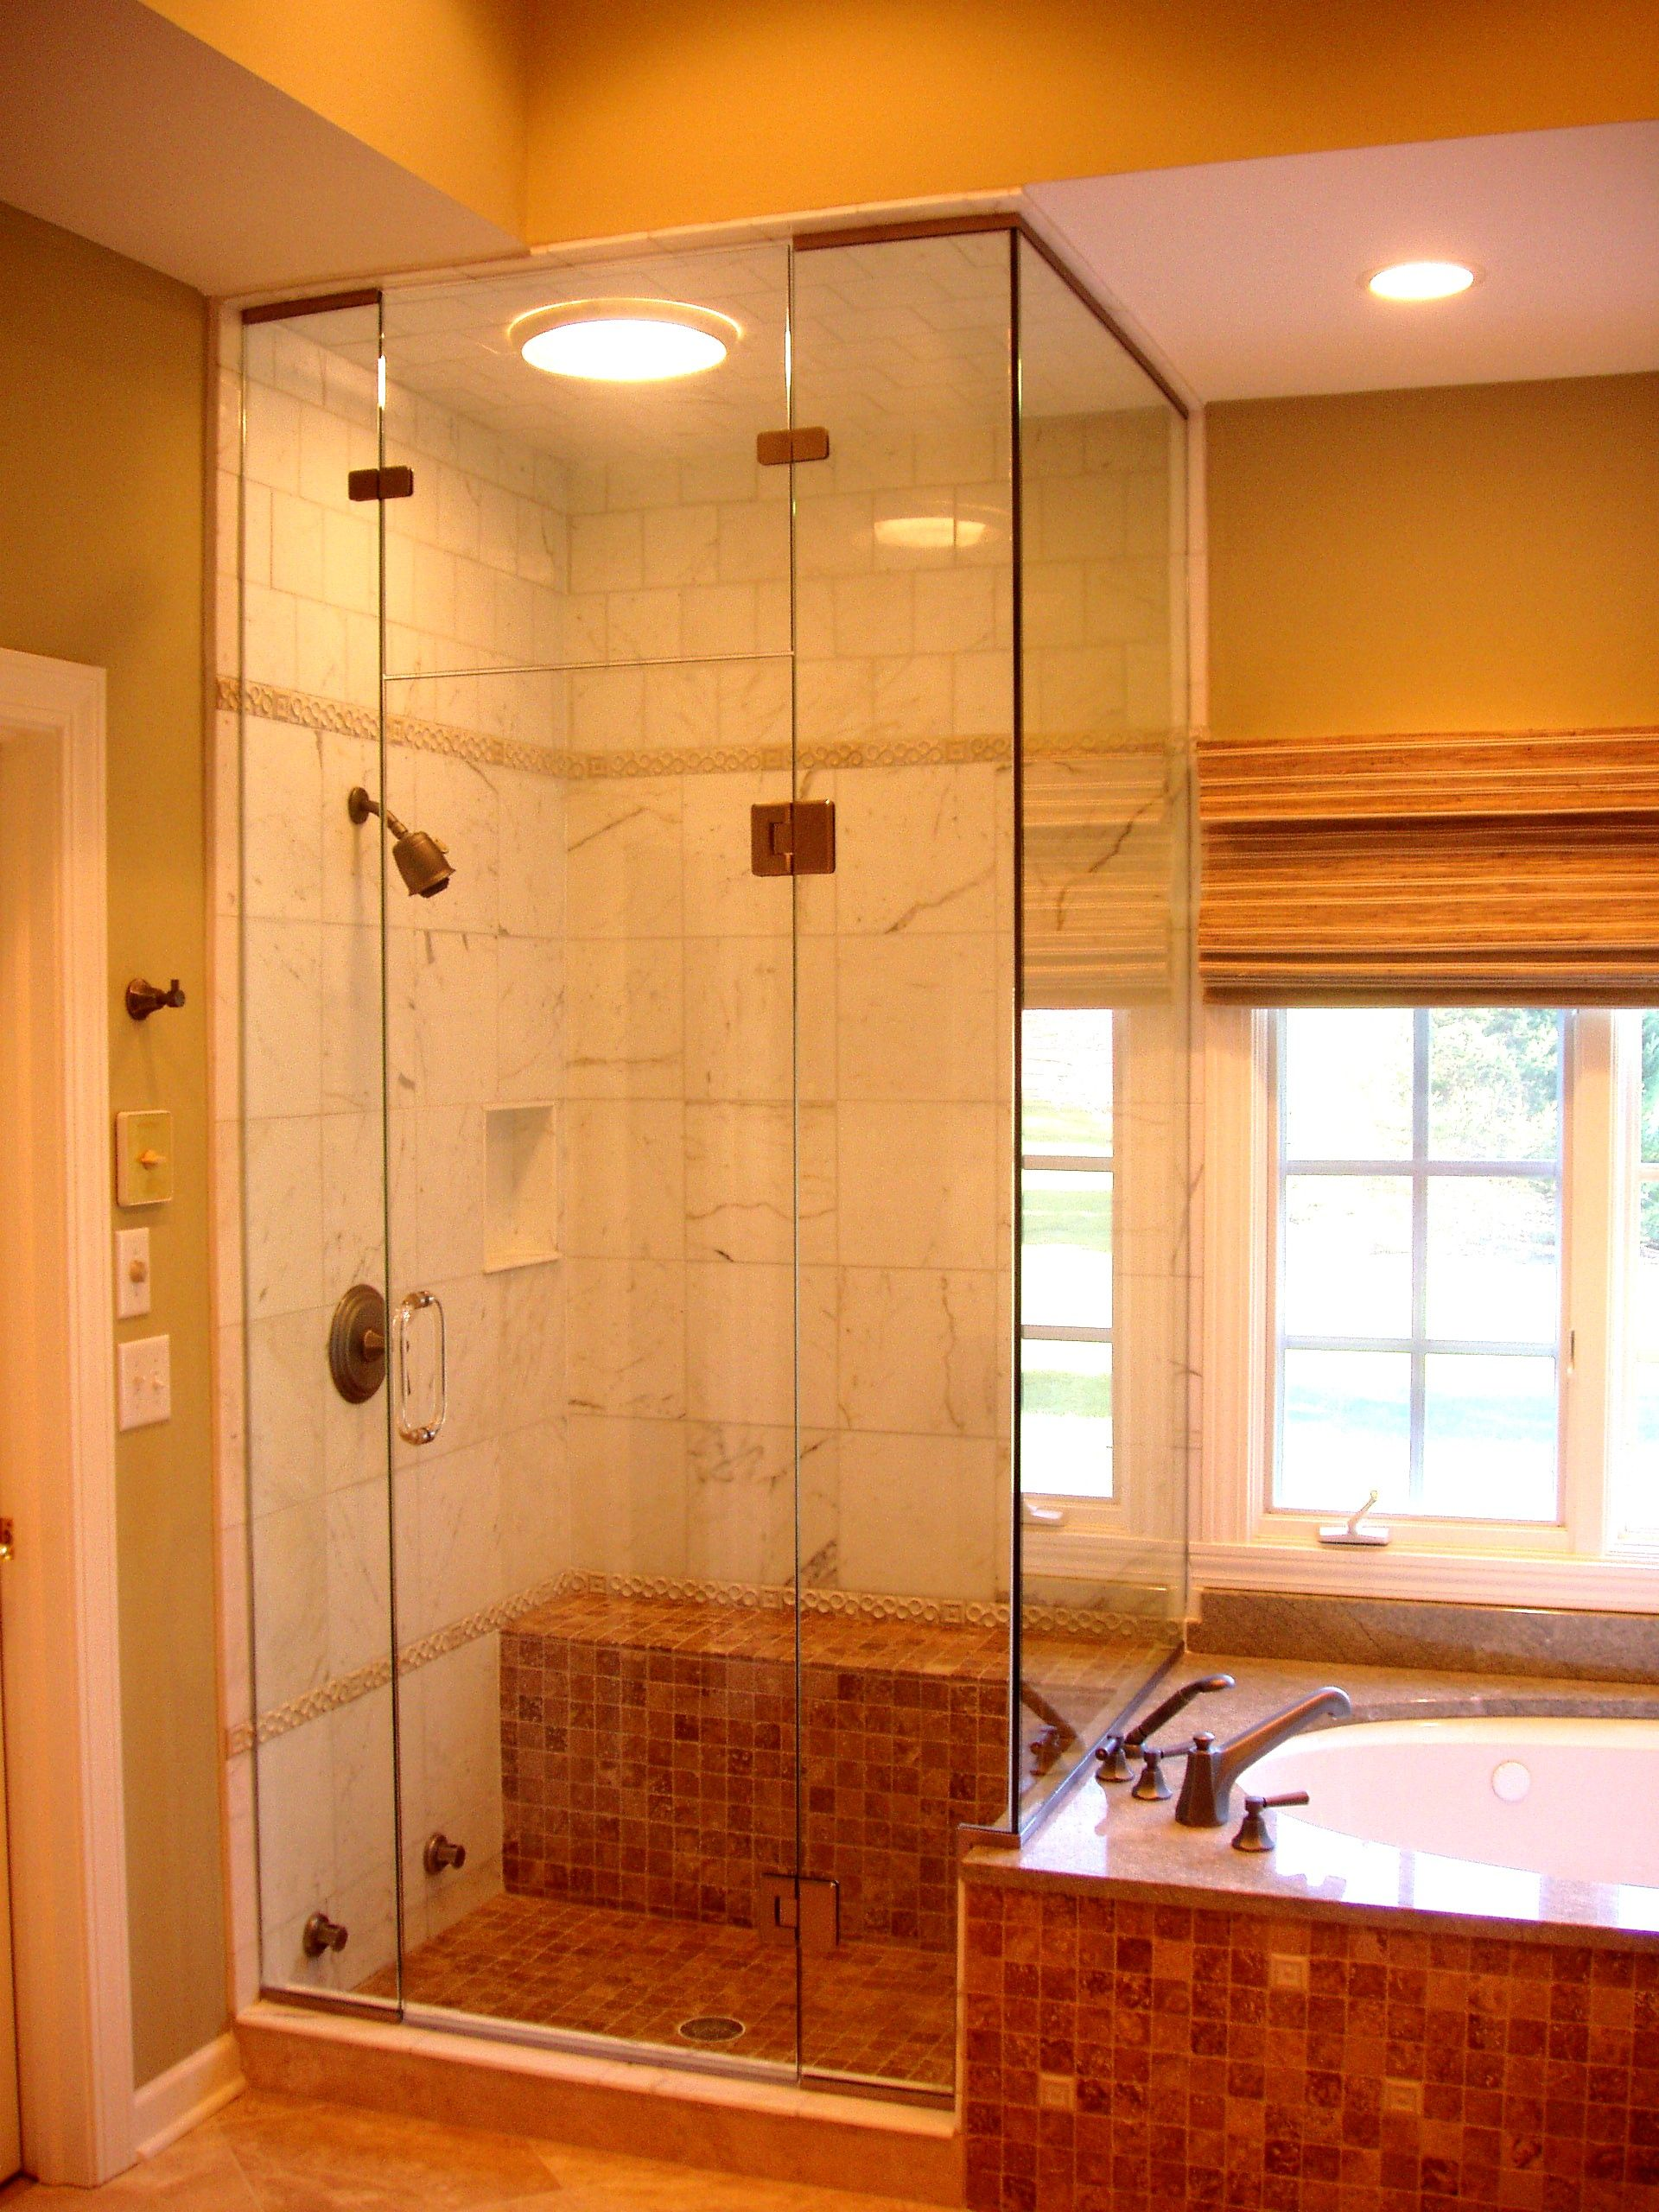 38+ Small bathroom tile ideas with shower information